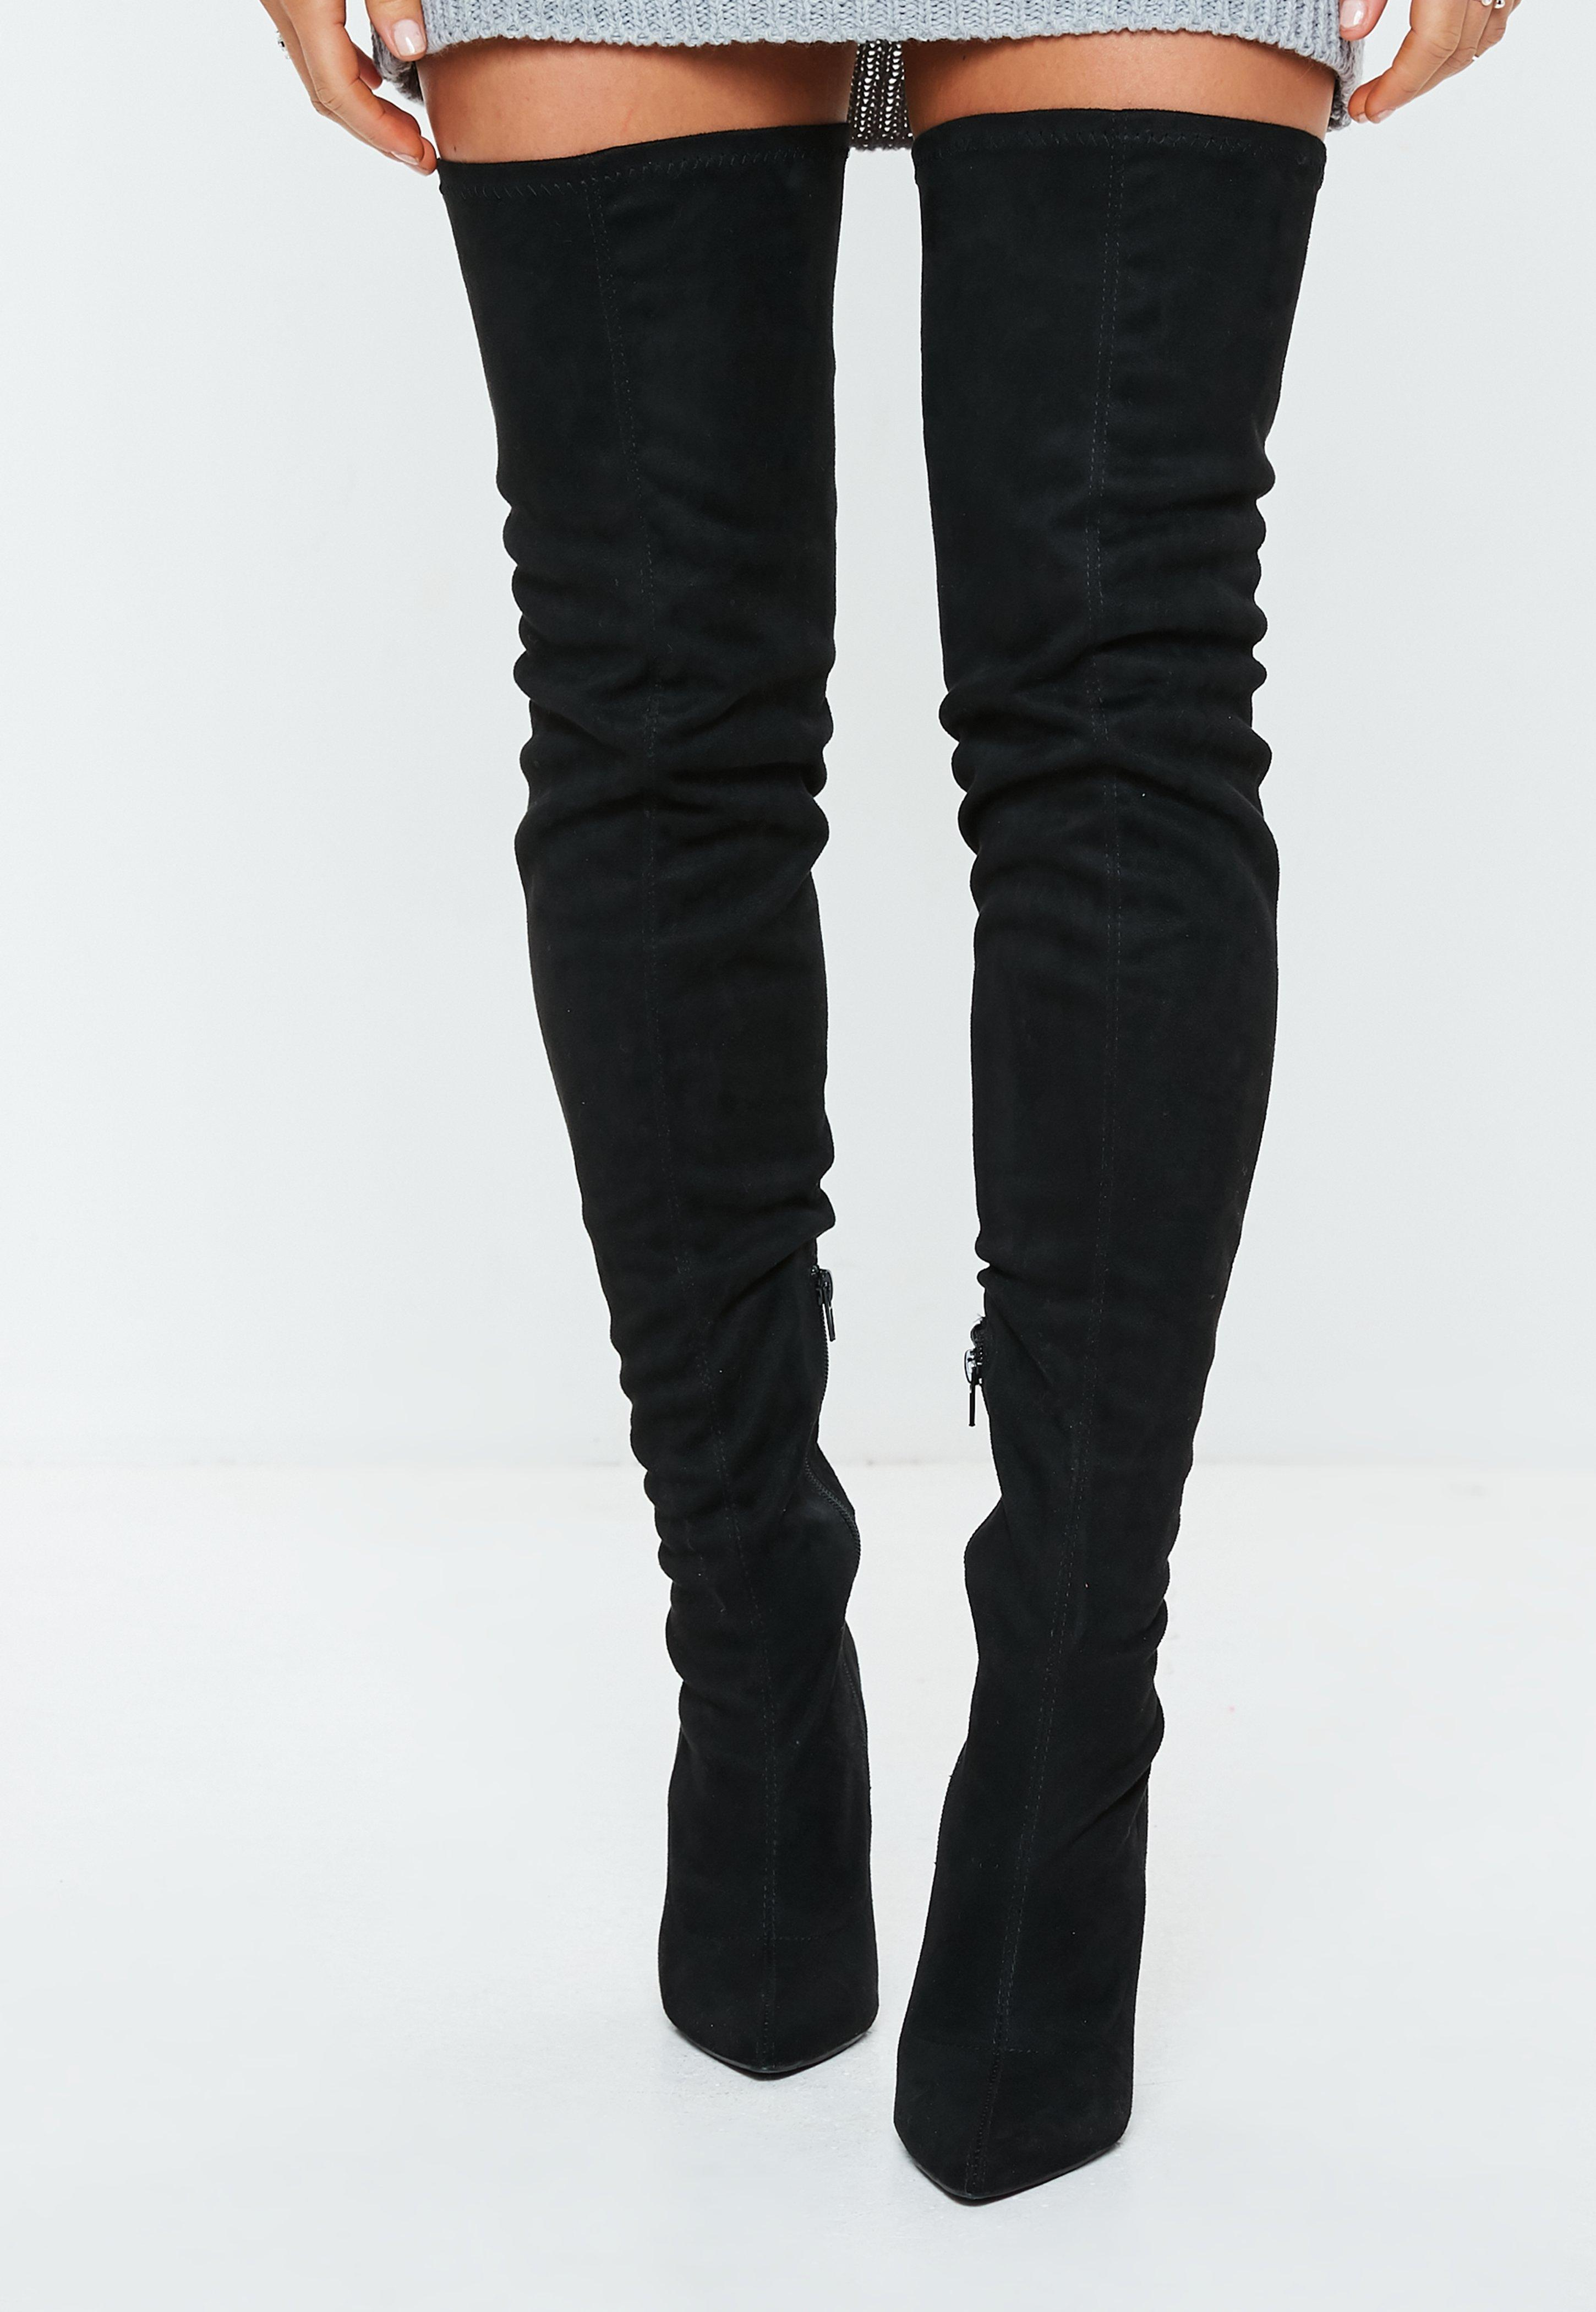 5bc77fa16588 Missguided - Black Over The Knee Flared Heel Boots - Lyst. View fullscreen